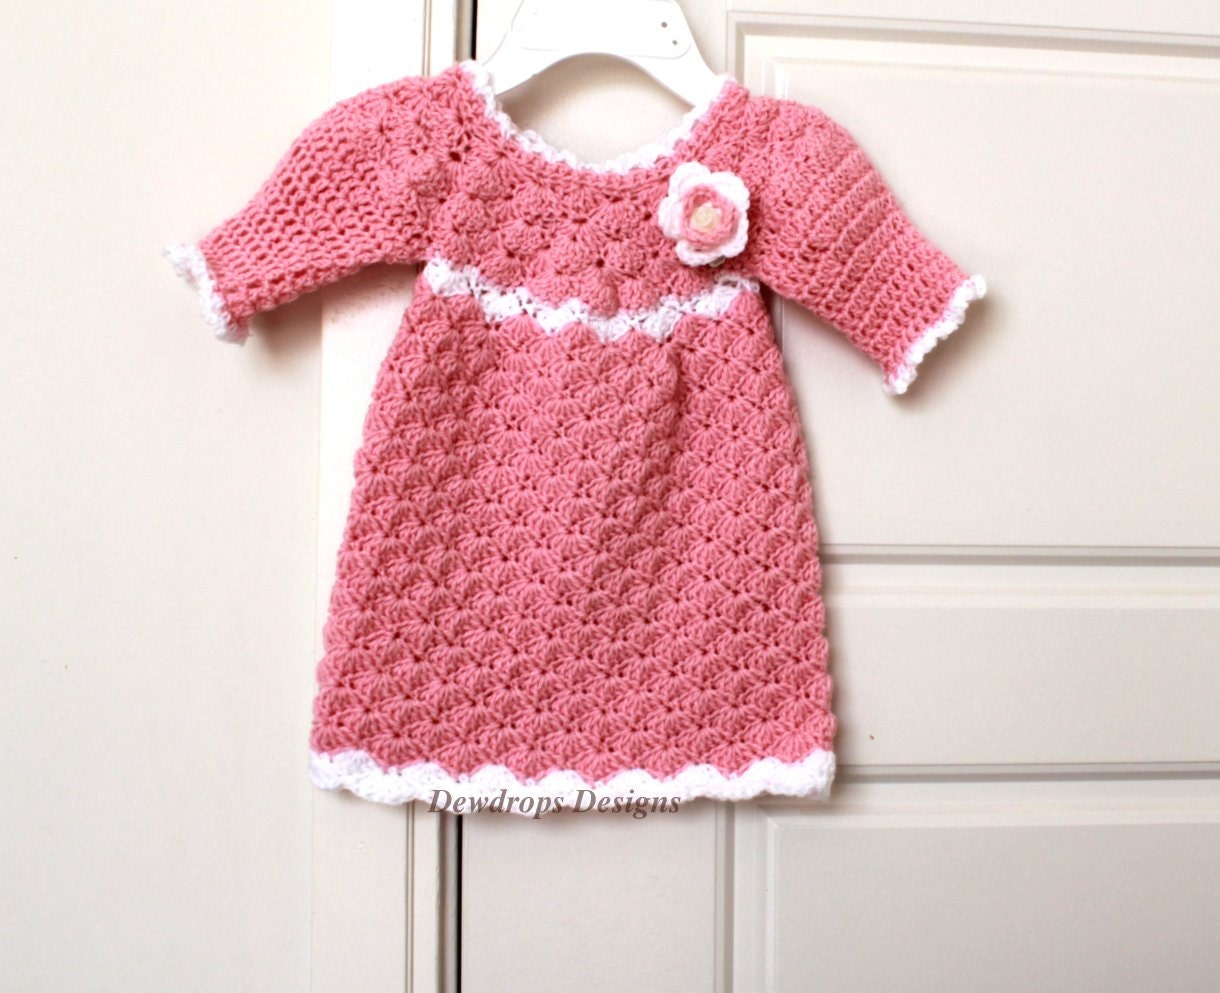 CAIBIET Newborn Baby Girl Boy Coming Home Outfits,Ladies I Have Arrived Long Hat See more like this USA Baby Girls Boys Newborn Coming Home outfit .